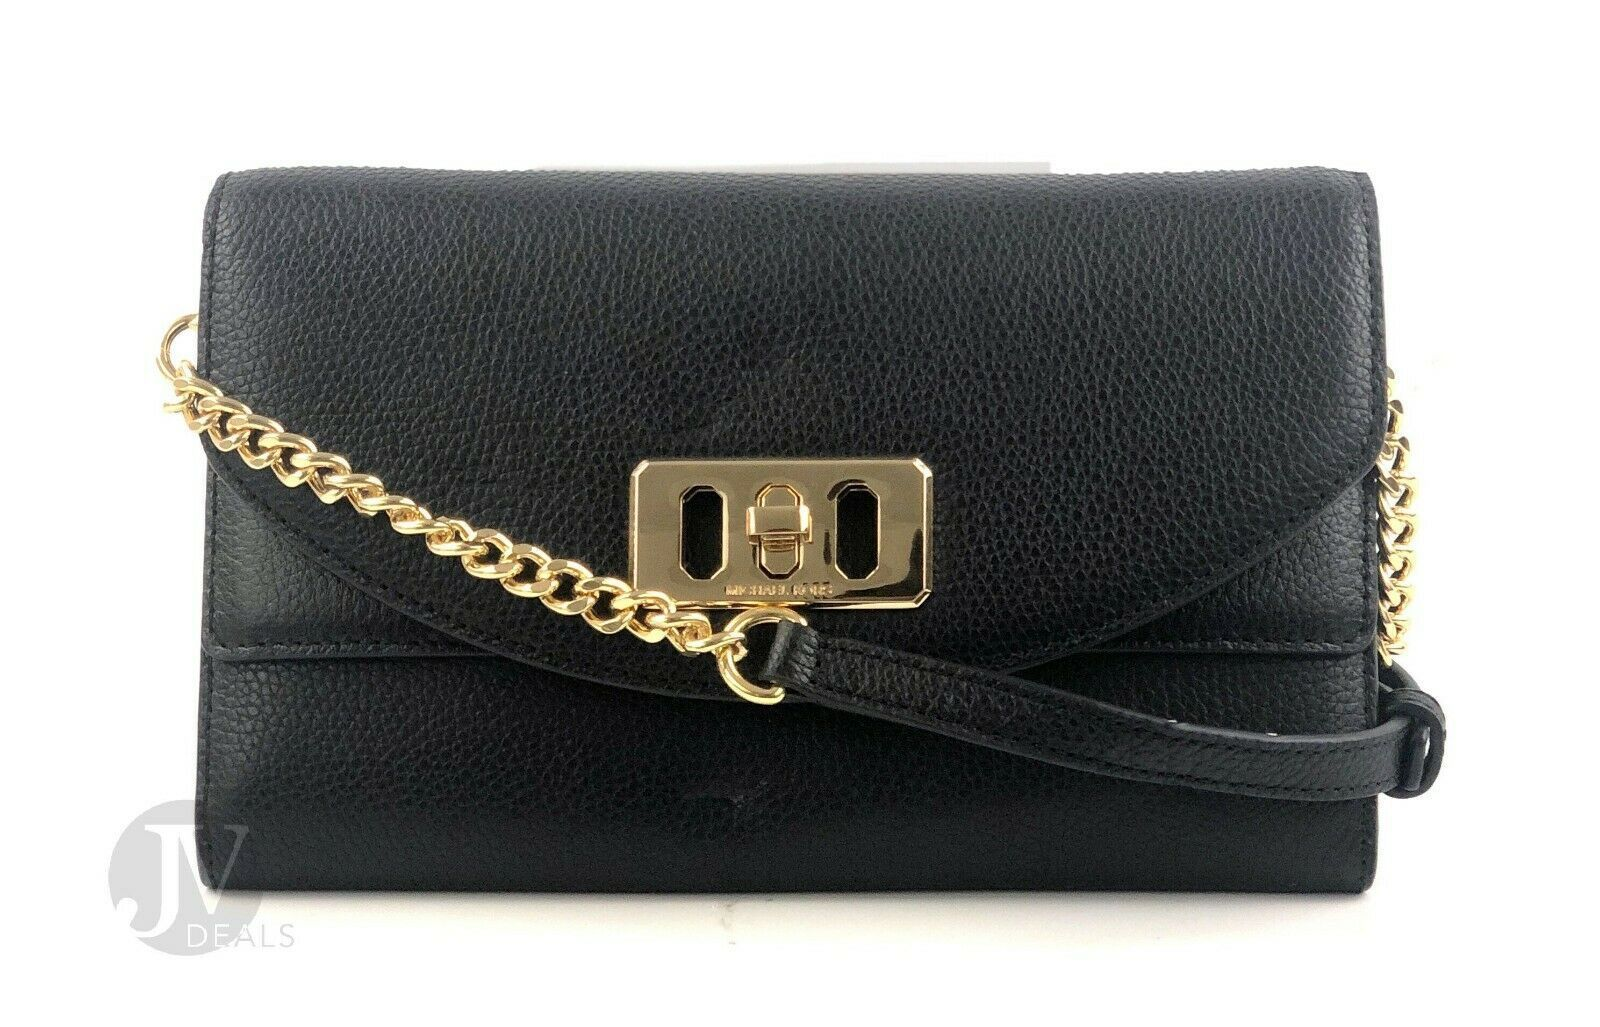 Primary image for Michael Kors Black Pebbled Leather Travel Wallet Clutch Crossbody Bag